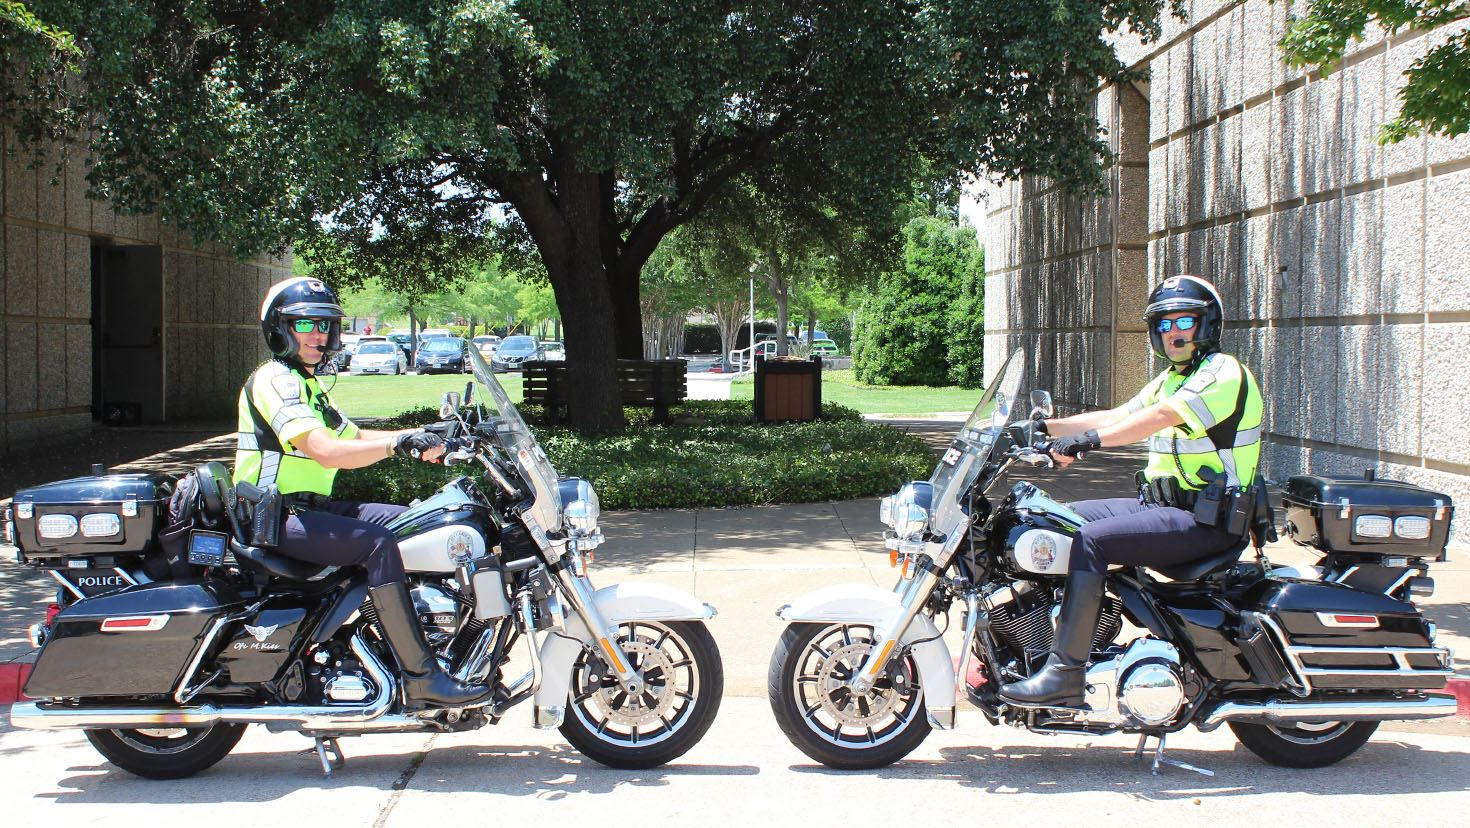 Two Allen police officers on motorcycles